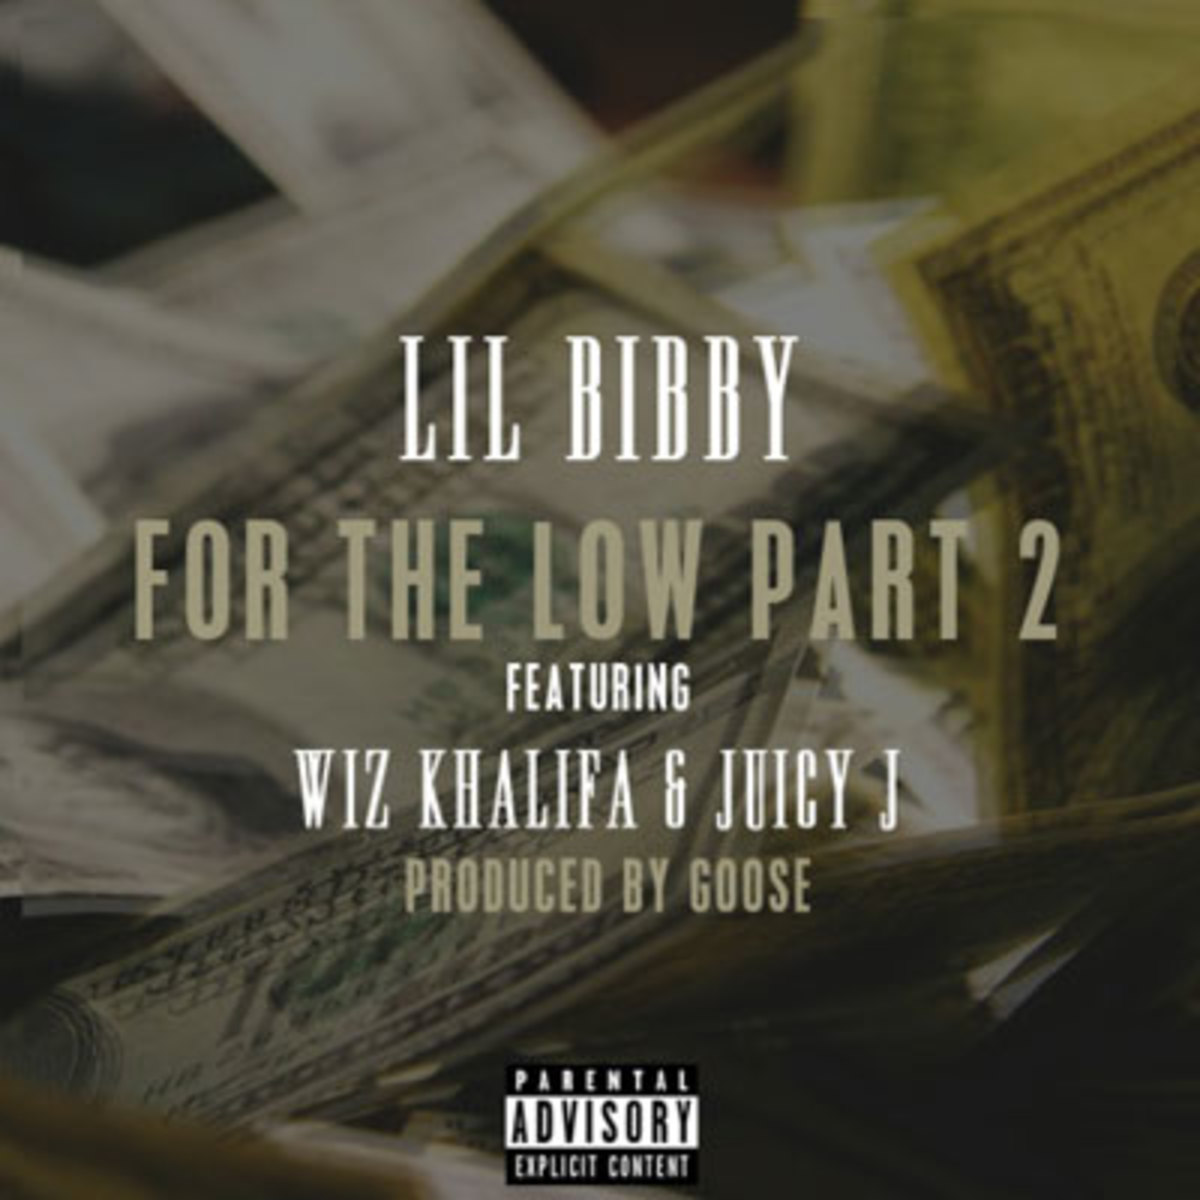 lilbibby-forthelow2.jpg